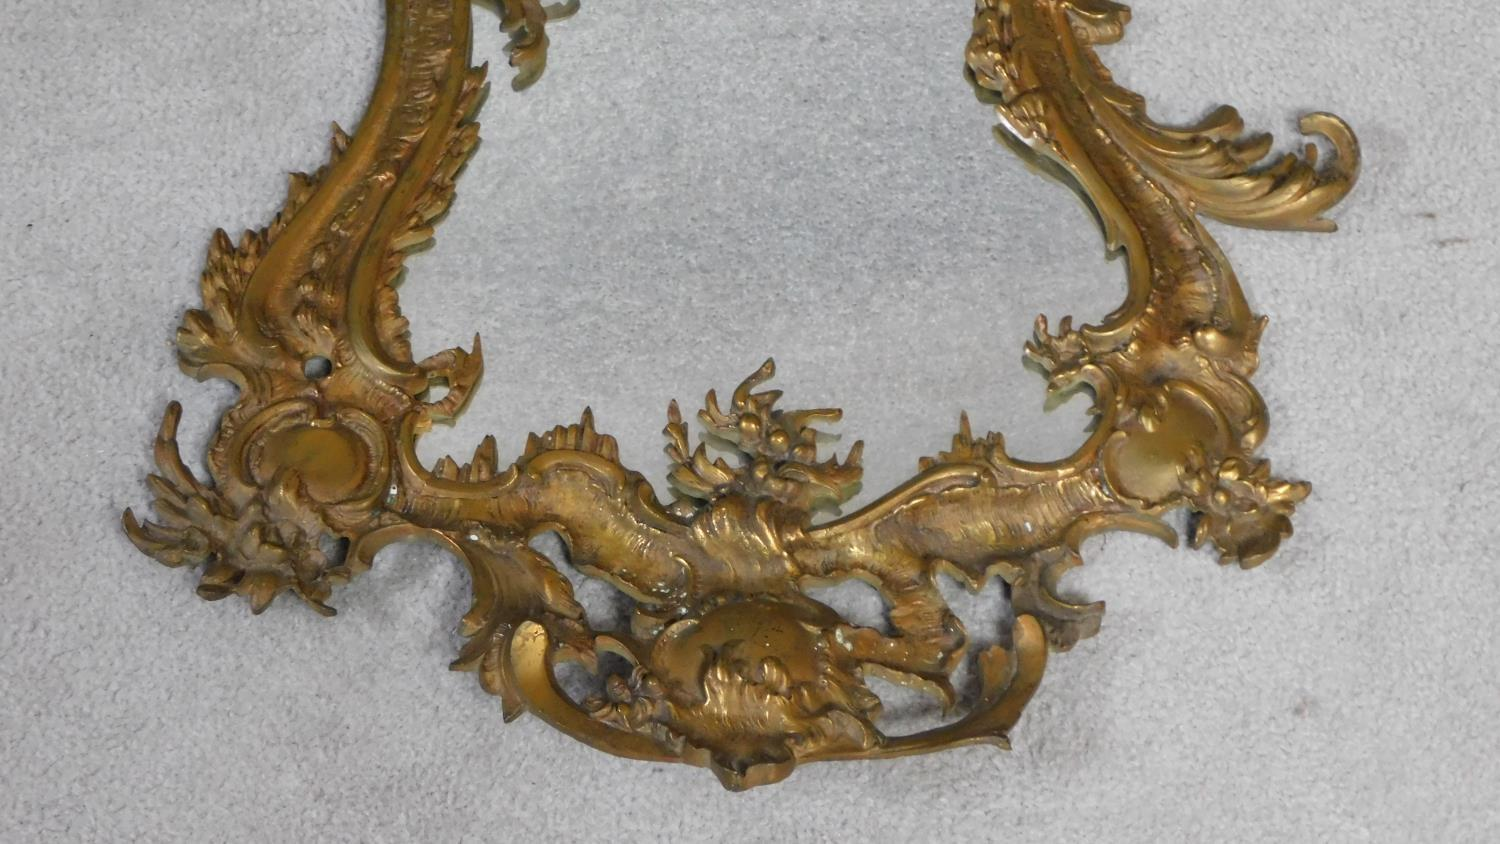 A Rococo style ormolu gilt brass mirror. Rocaille formed frame with wooden back. H.80xW.51cm - Image 3 of 3